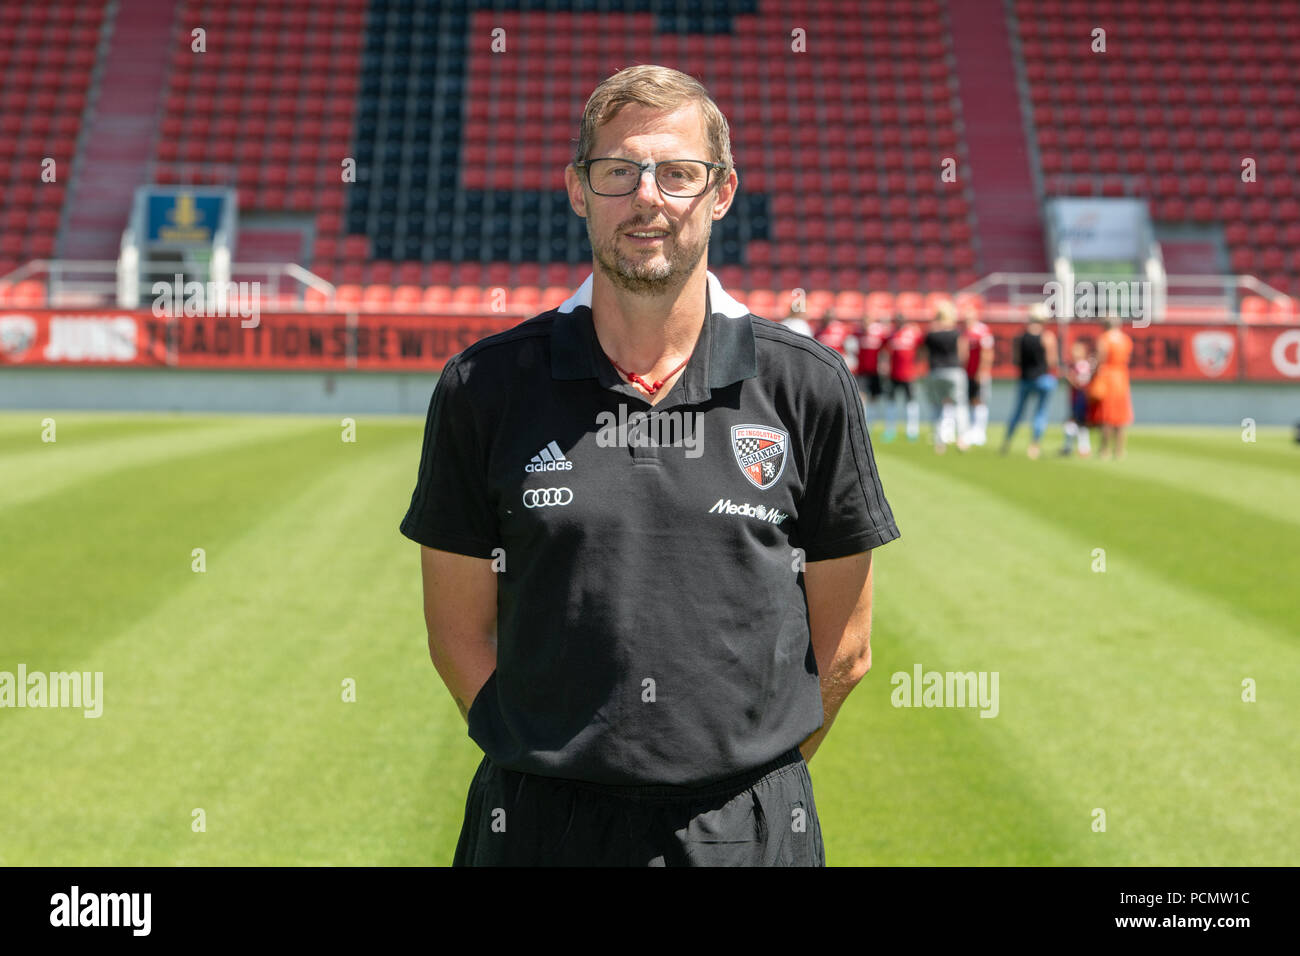 Ingolstadt, Germany. 19th July, 2018. 2nd German Bundesliga, official photocall FC Ingolstadt for season 2018/19 in Ingolstadt, Germany: kitman Michael Klattenbacher ; Credit: Armin Weigel/dpa | usage worldwide/dpa/Alamy Live News - Stock Image